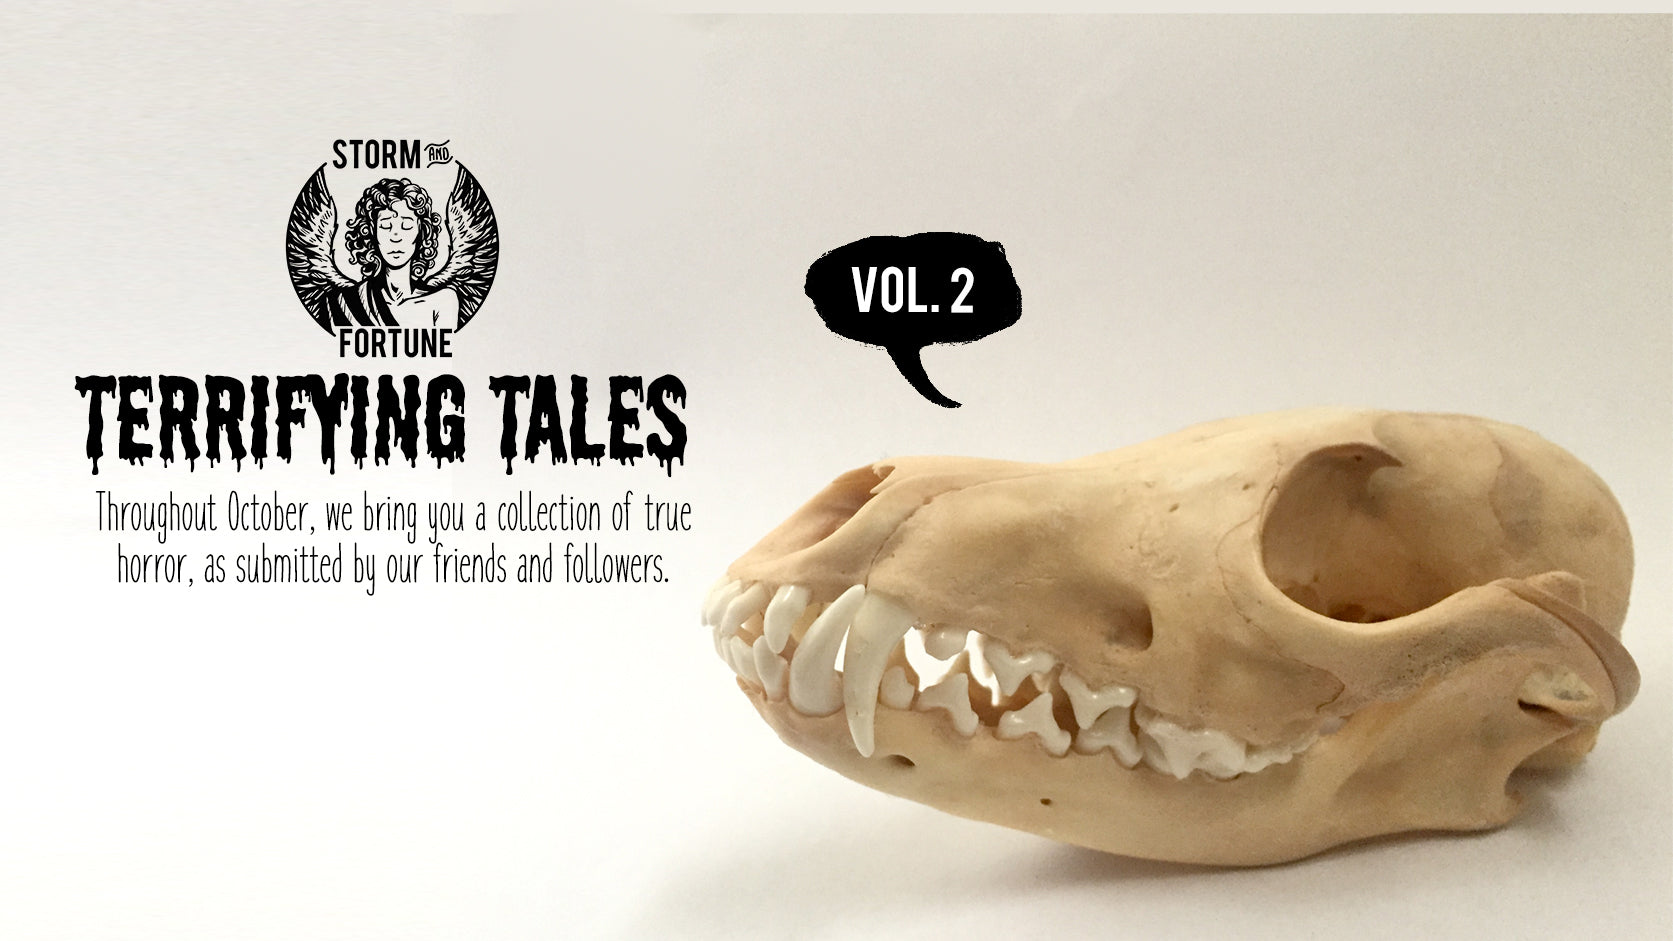 Terrifying Tales vol 2